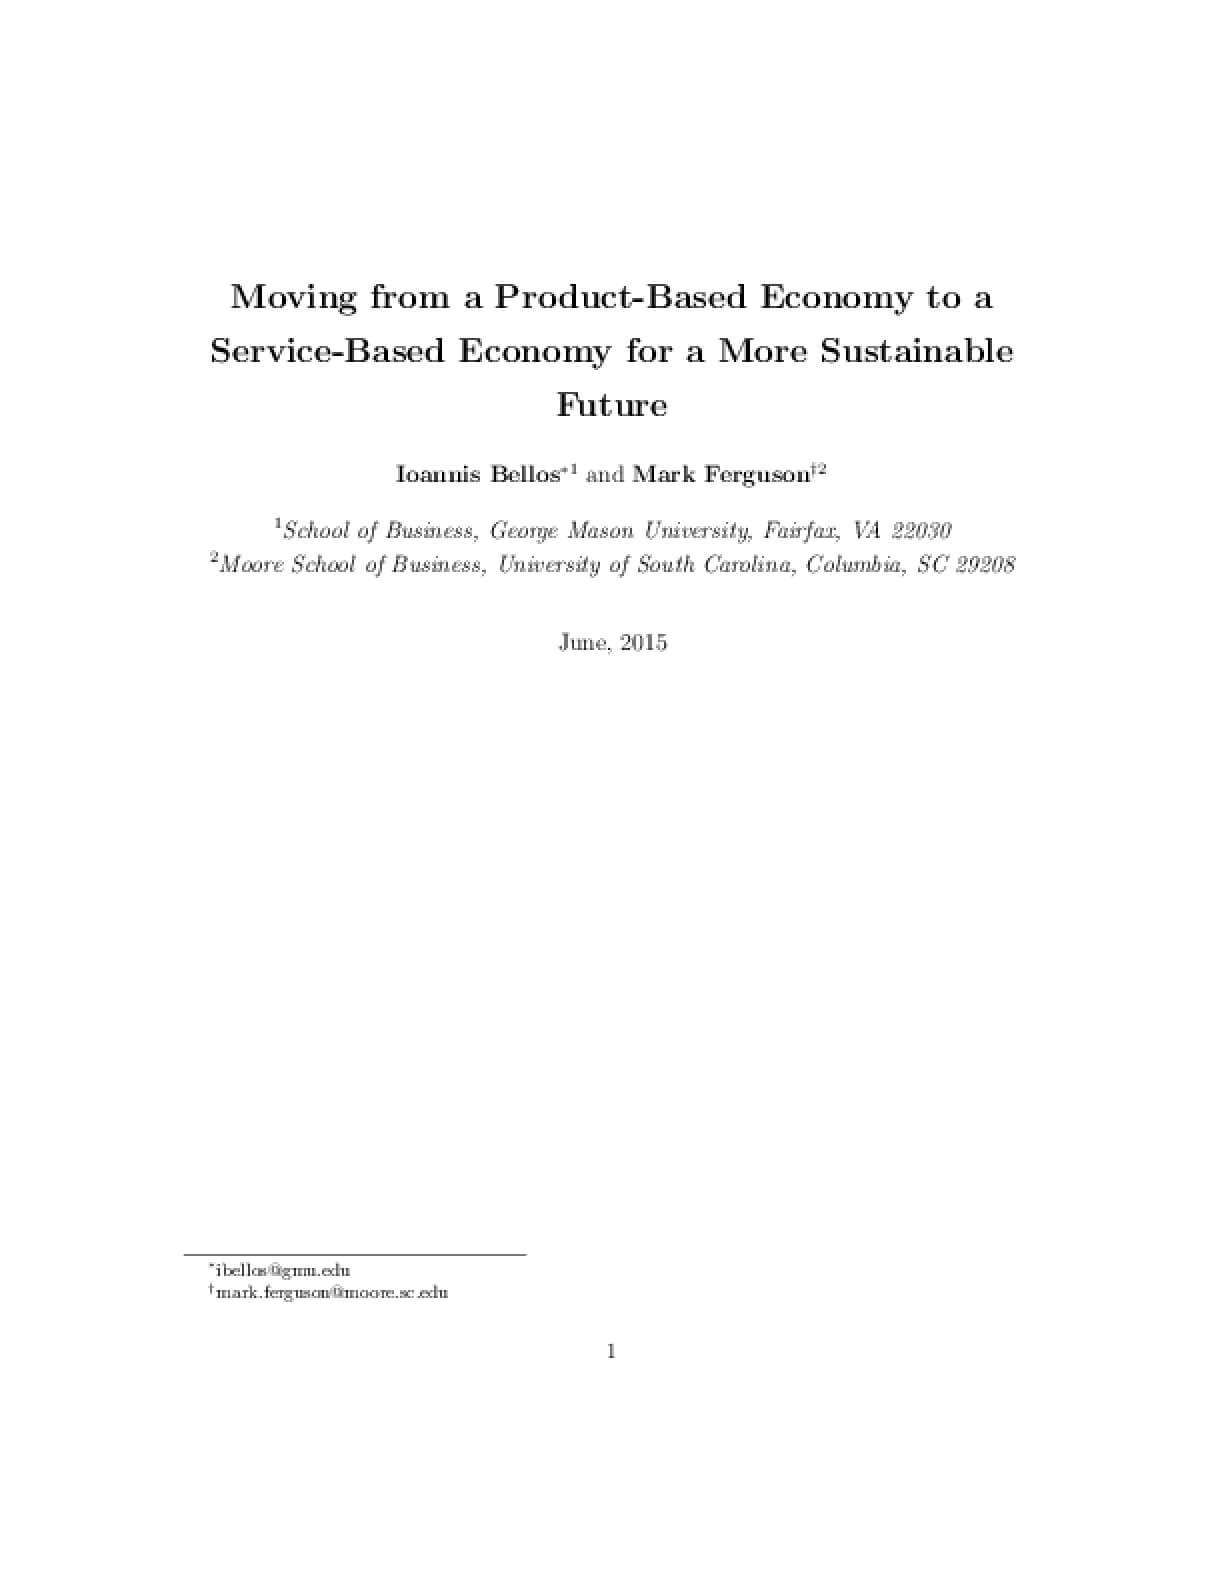 Moving from a Product-Based Economy to a Service-Based Economy for a More Sustainable Future